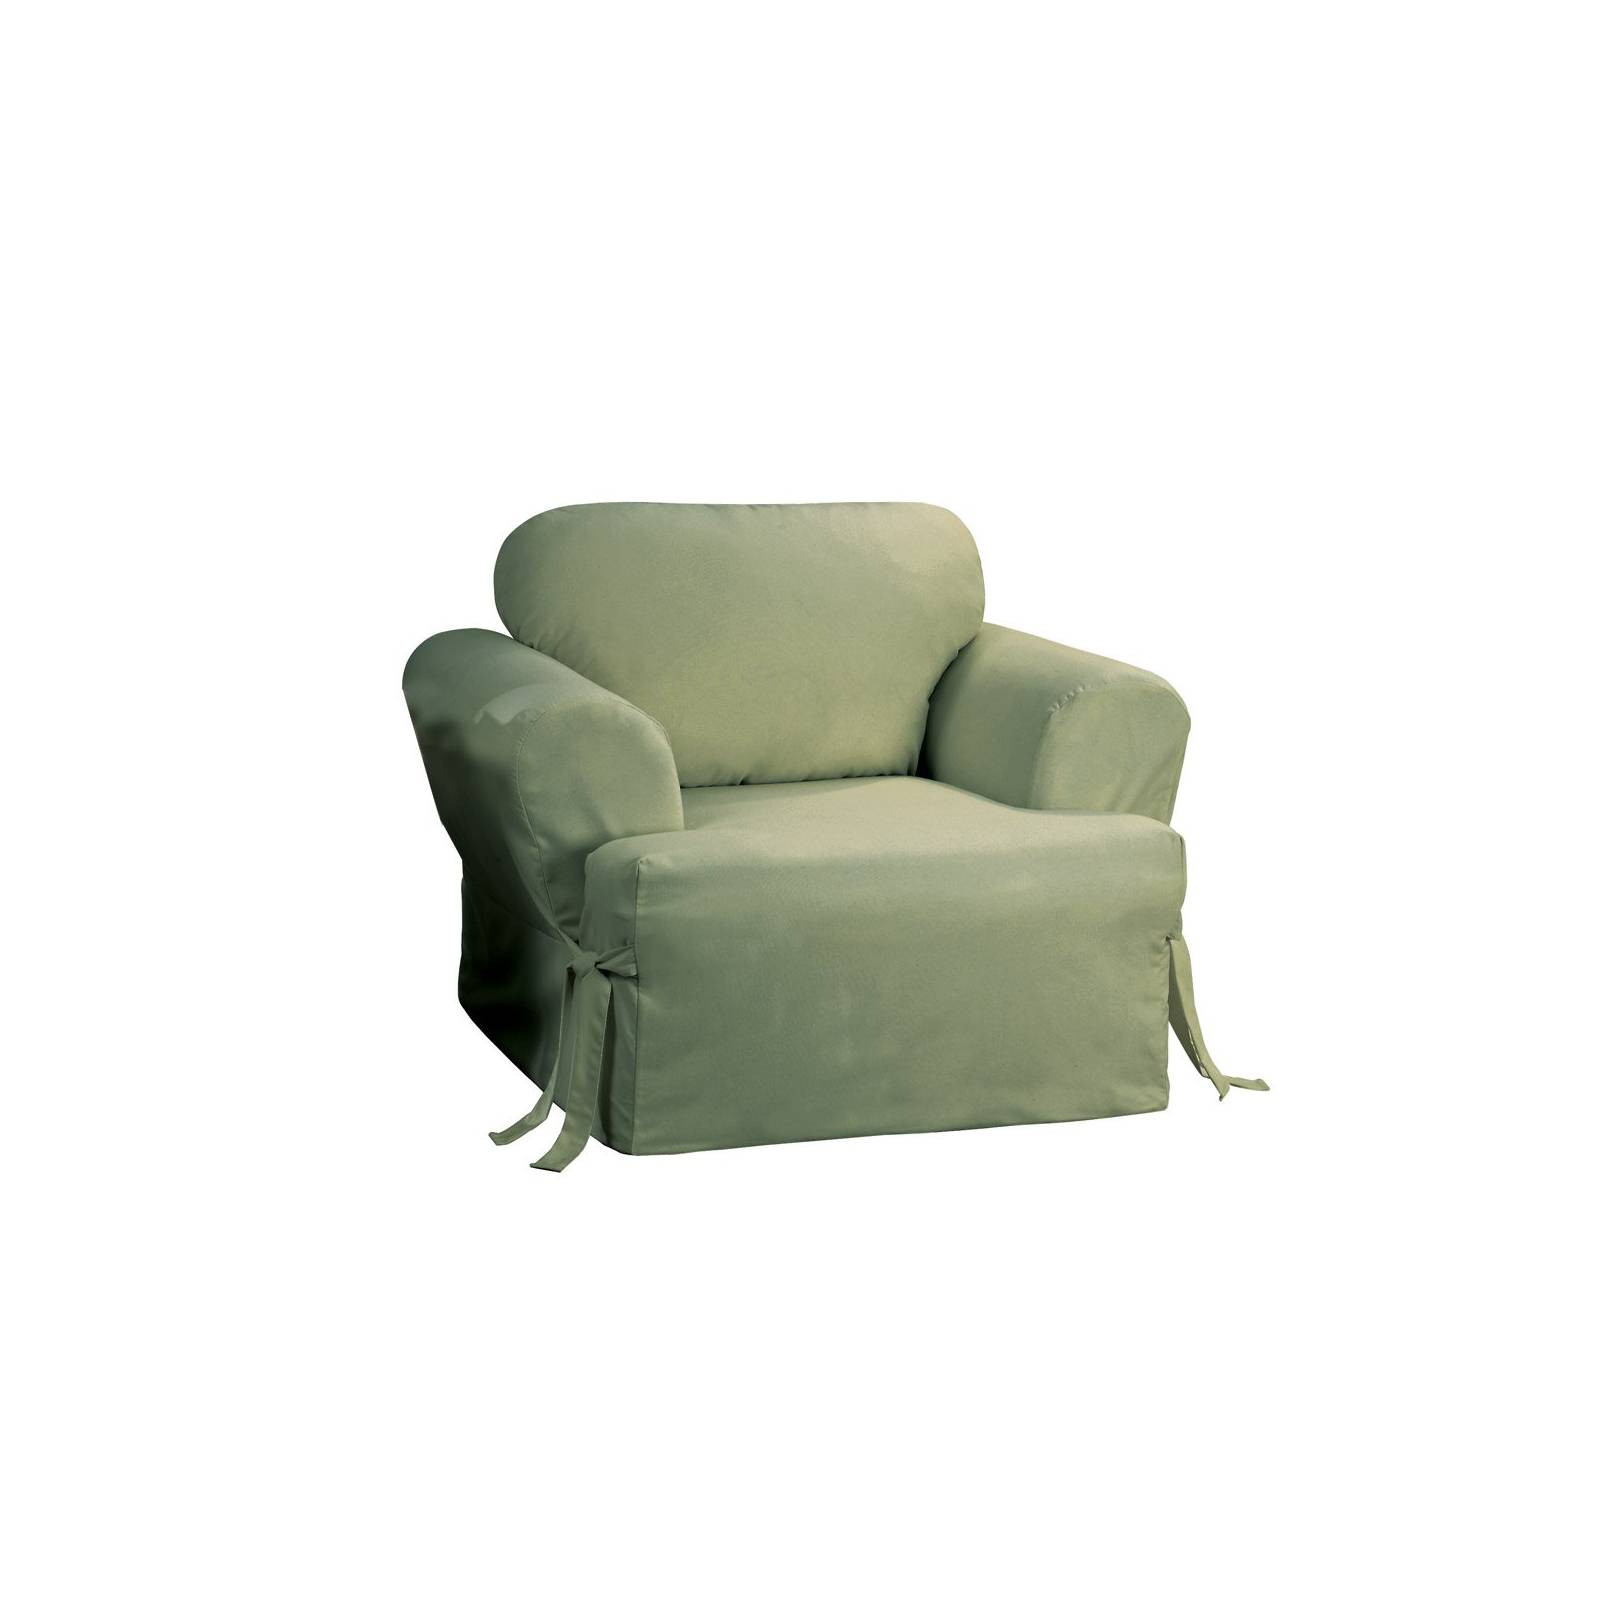 Best ideas about Sure Fit Chair Covers . Save or Pin Cotton Duck Tcushion Chair Slipcover Sure Fit Now.